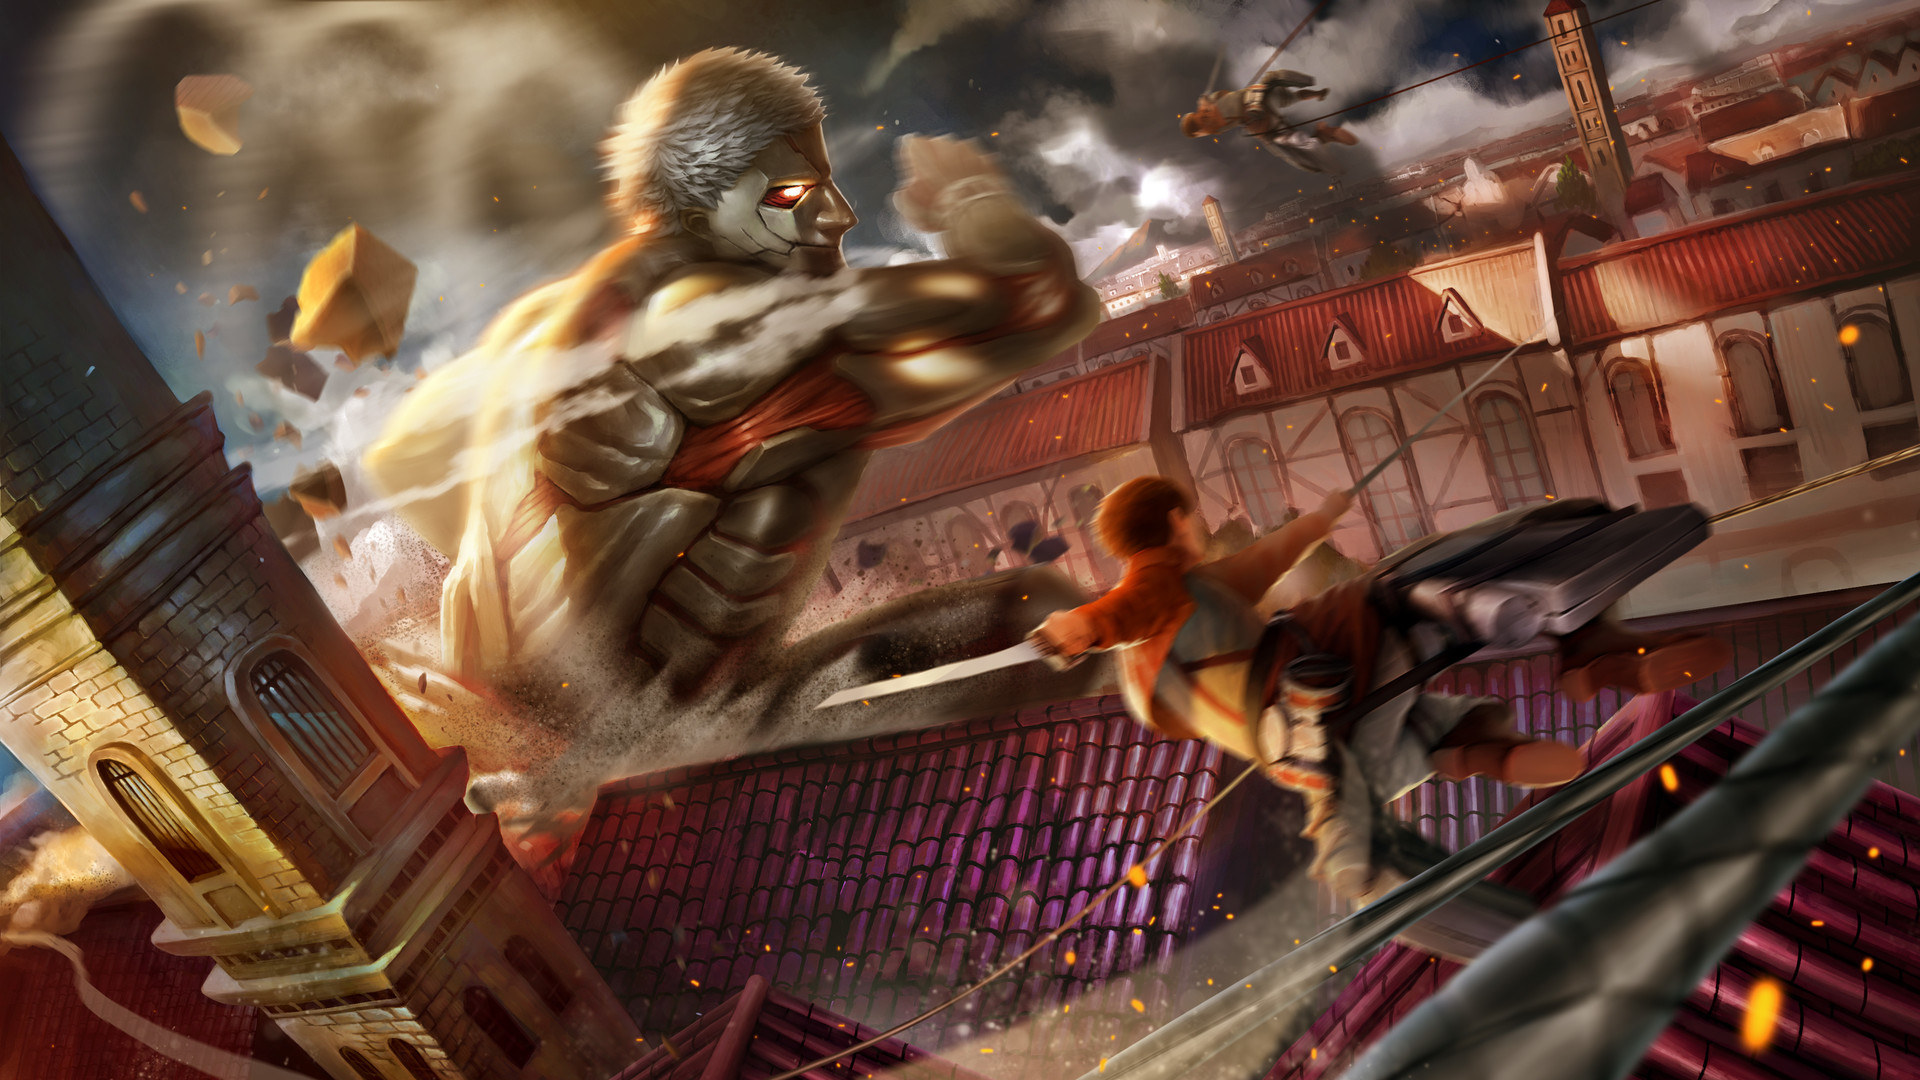 Wallpaper Of Armored Titan, Attack On Titan, City, - Attack On Titan Destroyed Background - HD Wallpaper